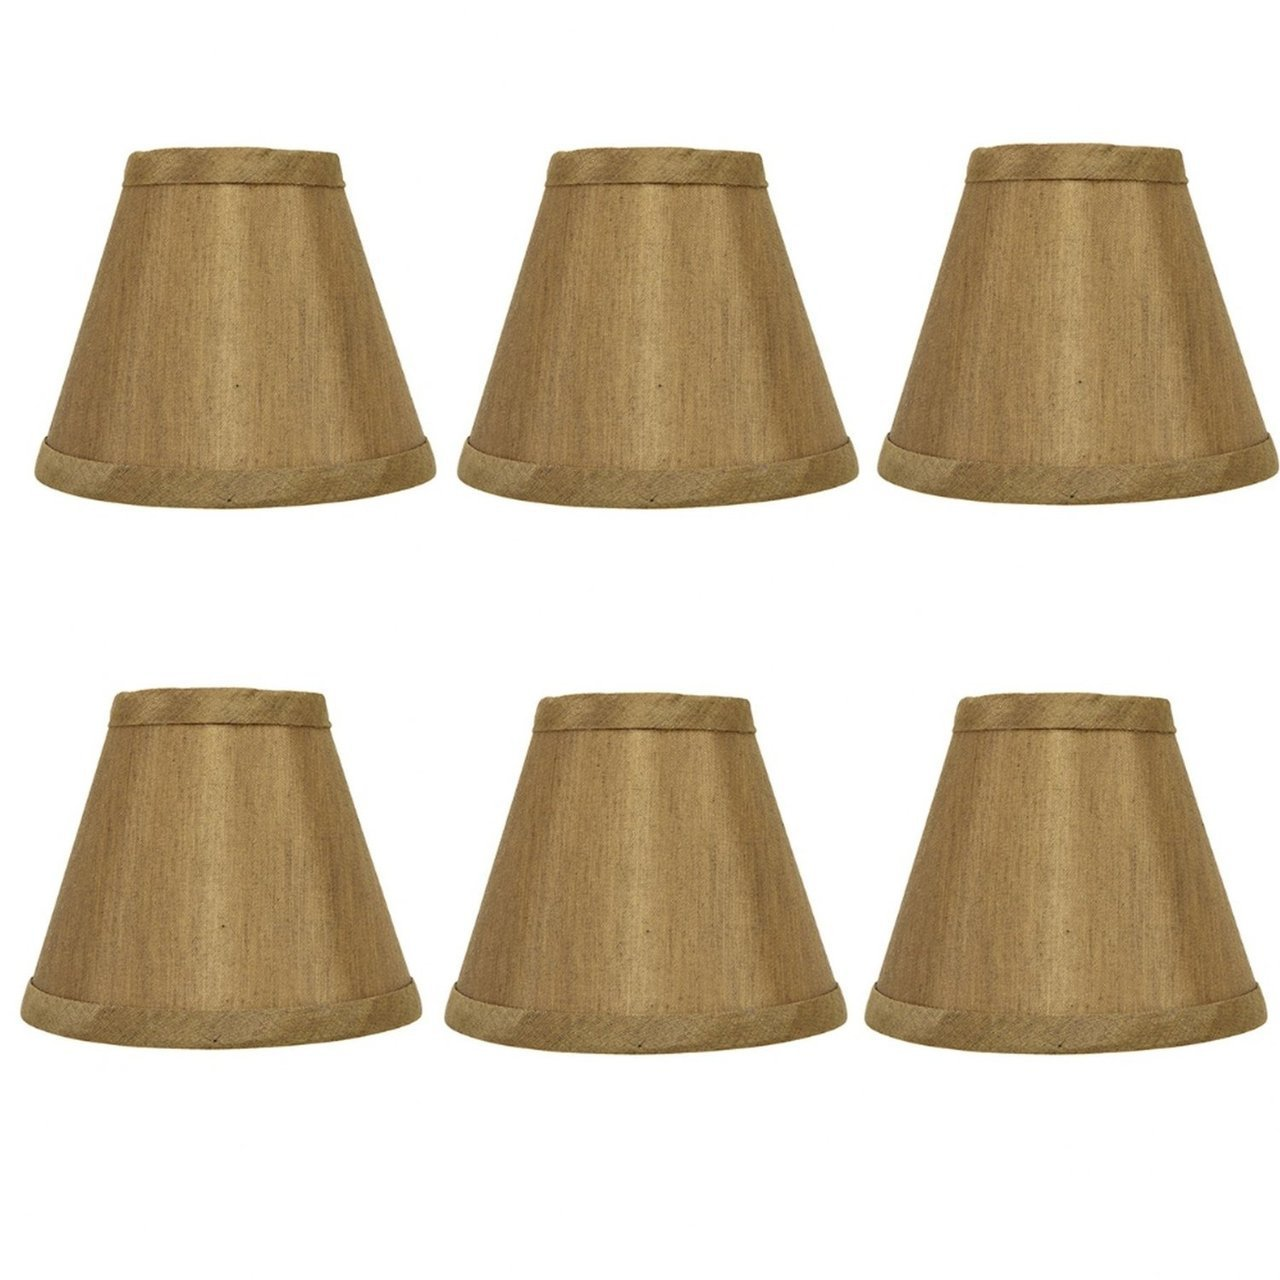 Upgradelights Bronze Silk 5 Inch Clip On Empire Chandelier Lampshades Set Of 6 2 5x5x4 25